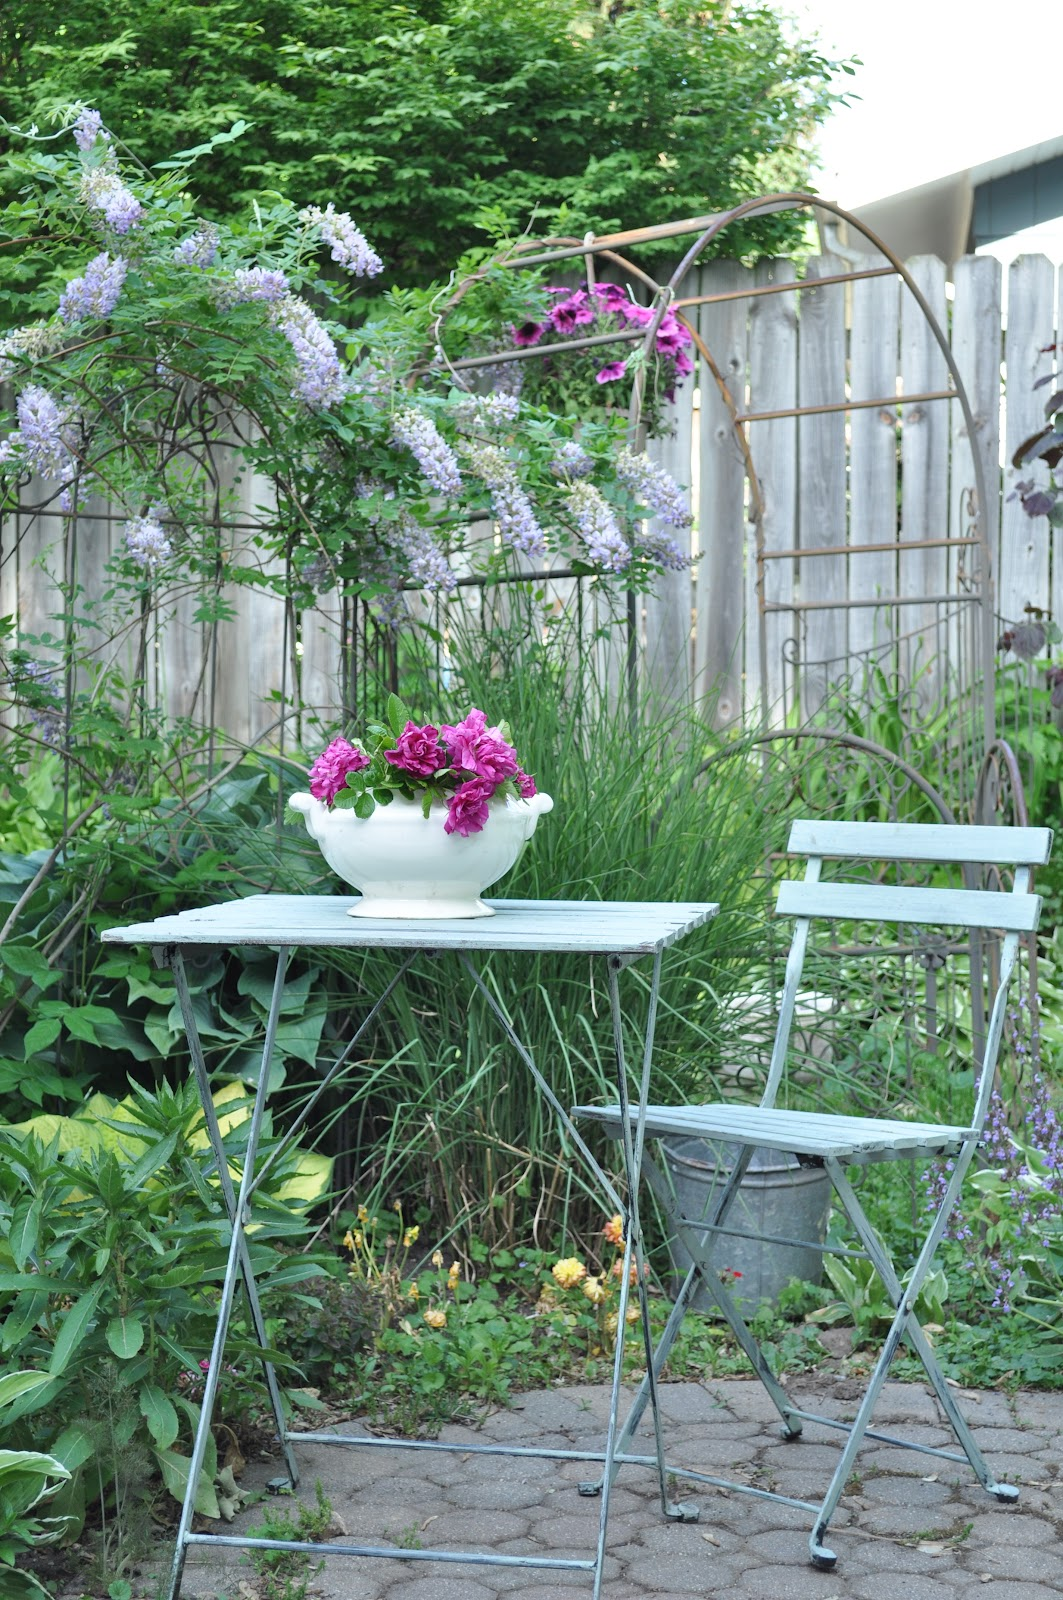 My Garden tour and garden ideas.... - Jennifer Rizzo on My Garden Outdoor Living id=17285